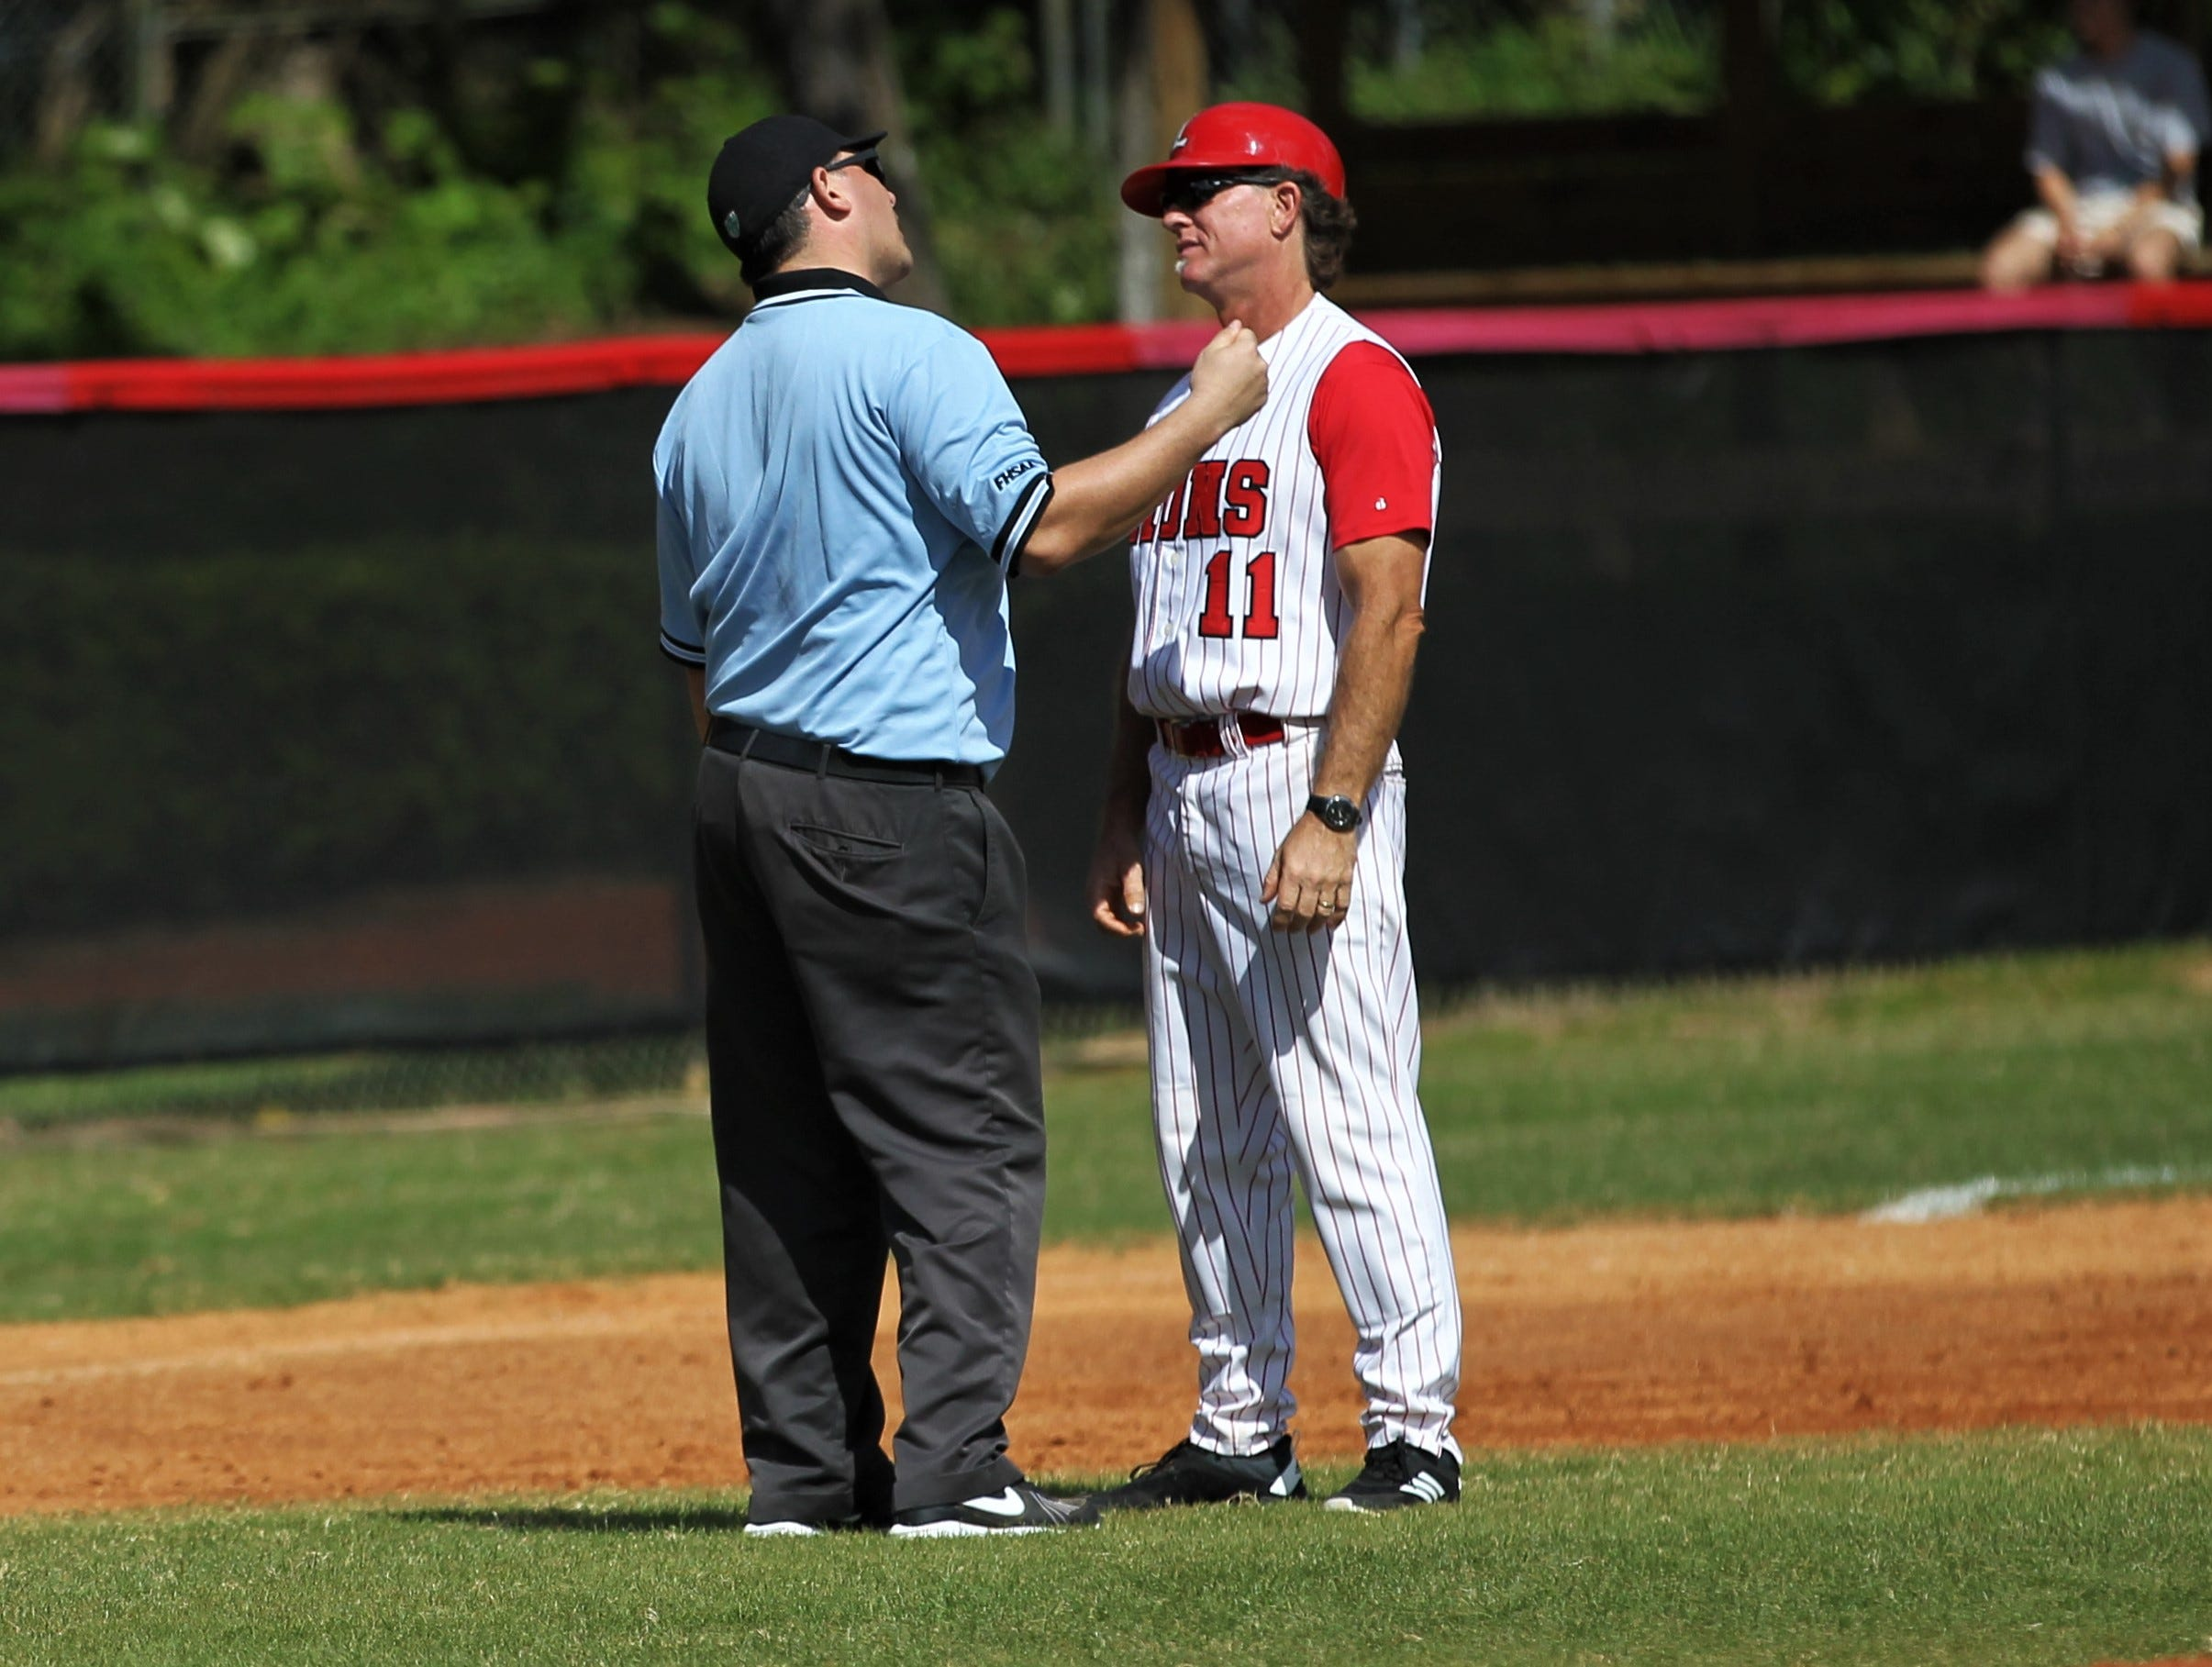 Leon baseball coach Robbie Zimmerman questions a call as NFC plays at Leon during a preseason game in February.